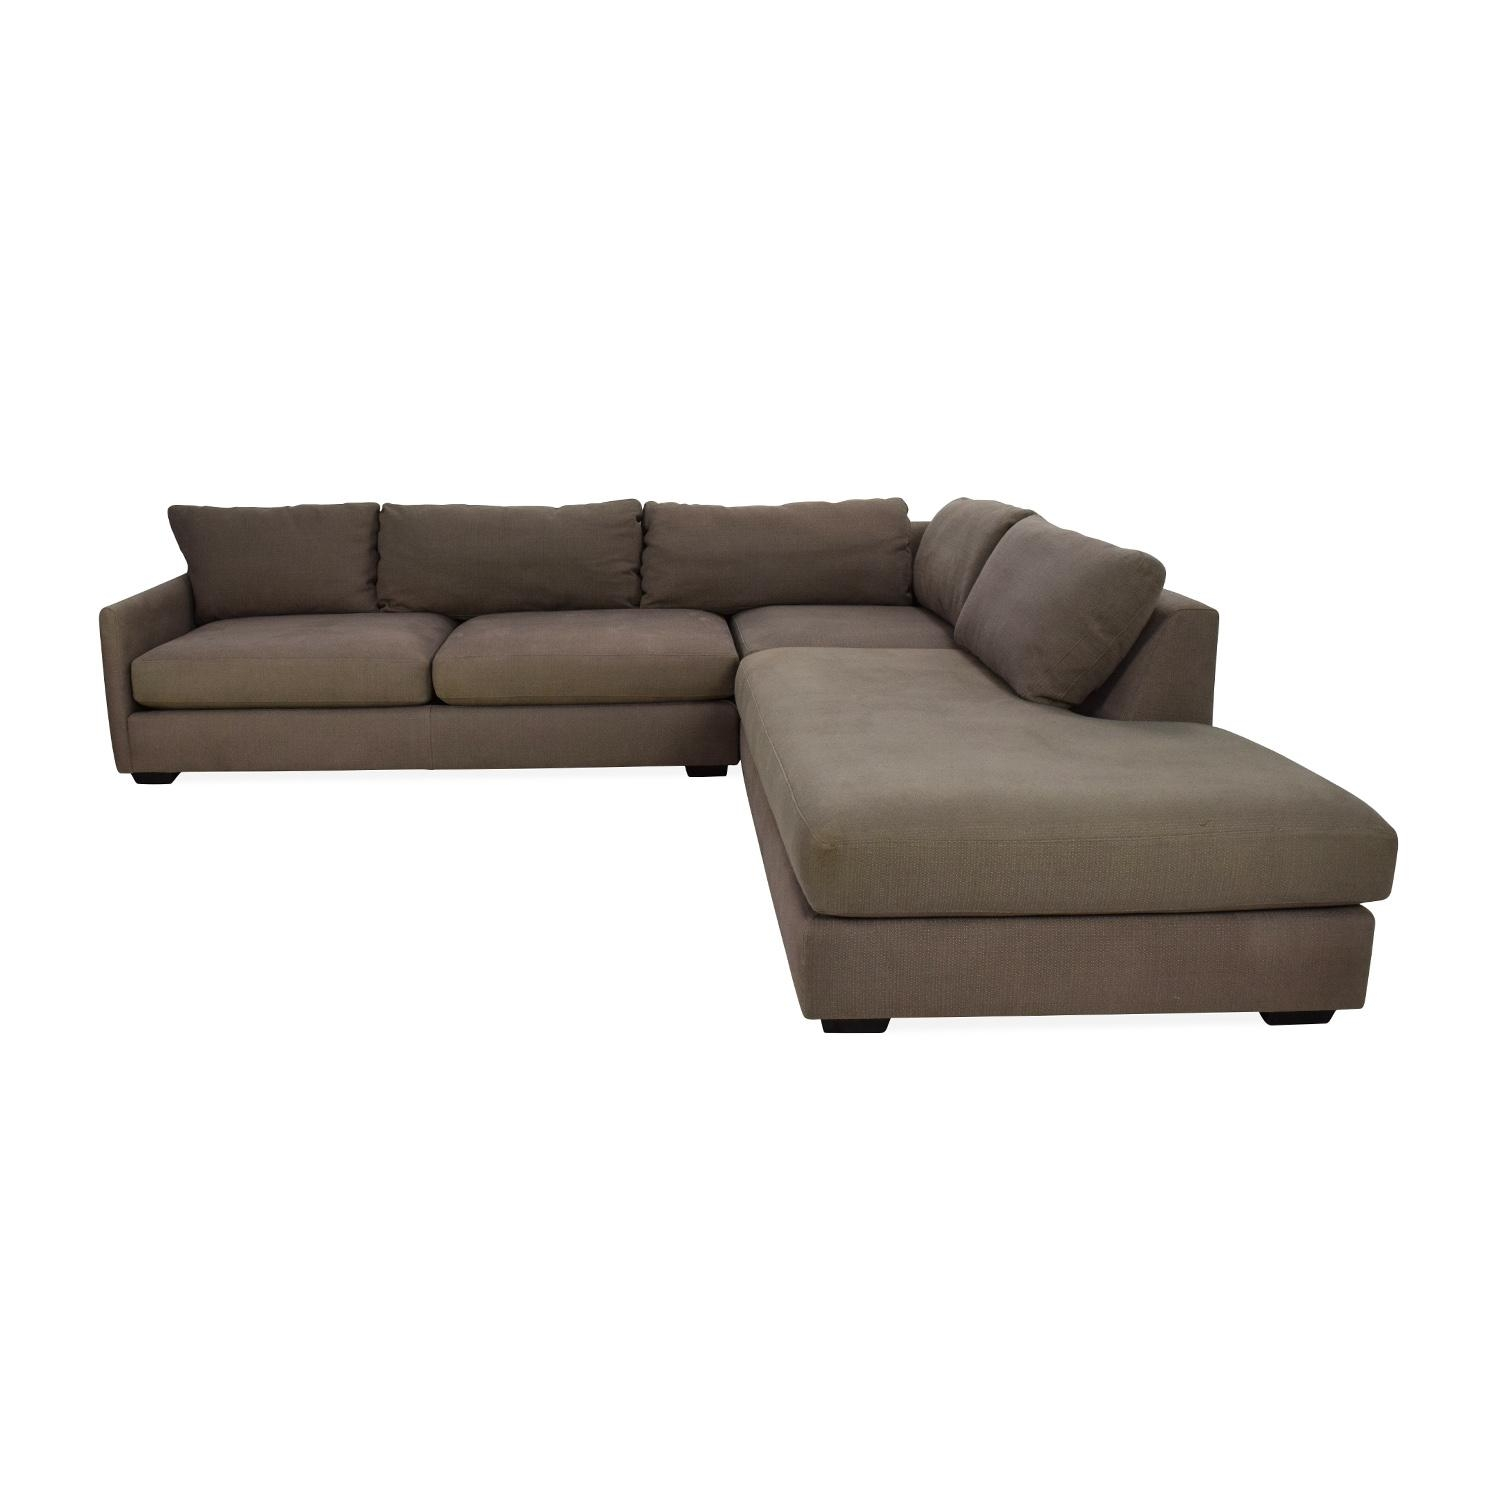 51% Off - Macy's Radley Sectional Sofa / Sofas intended for Used Sectionals